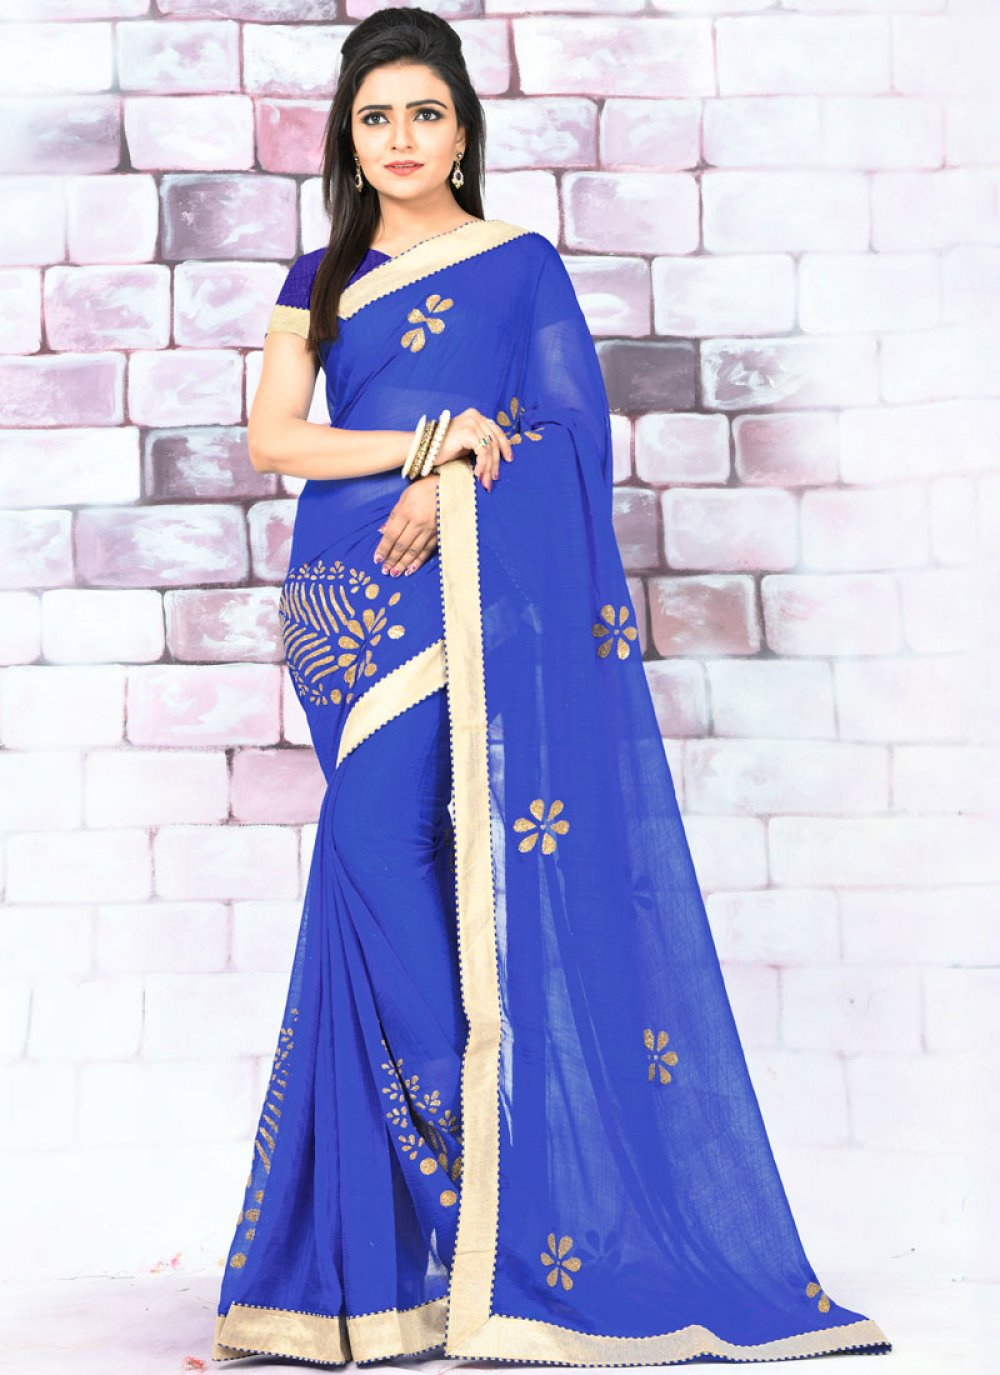 Lace Faux Chiffon Blue Designer Saree